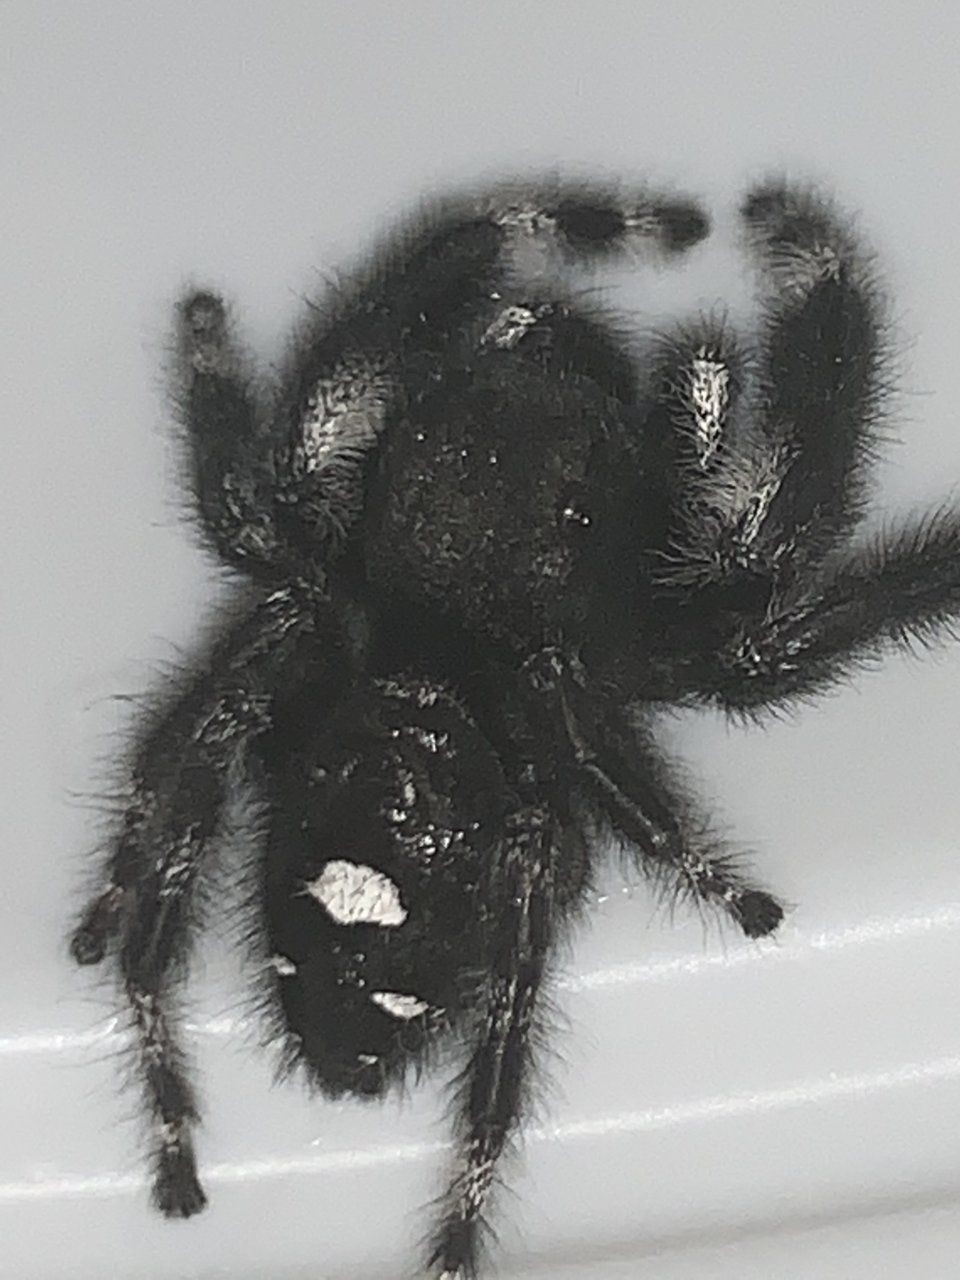 Phidippus additional photo